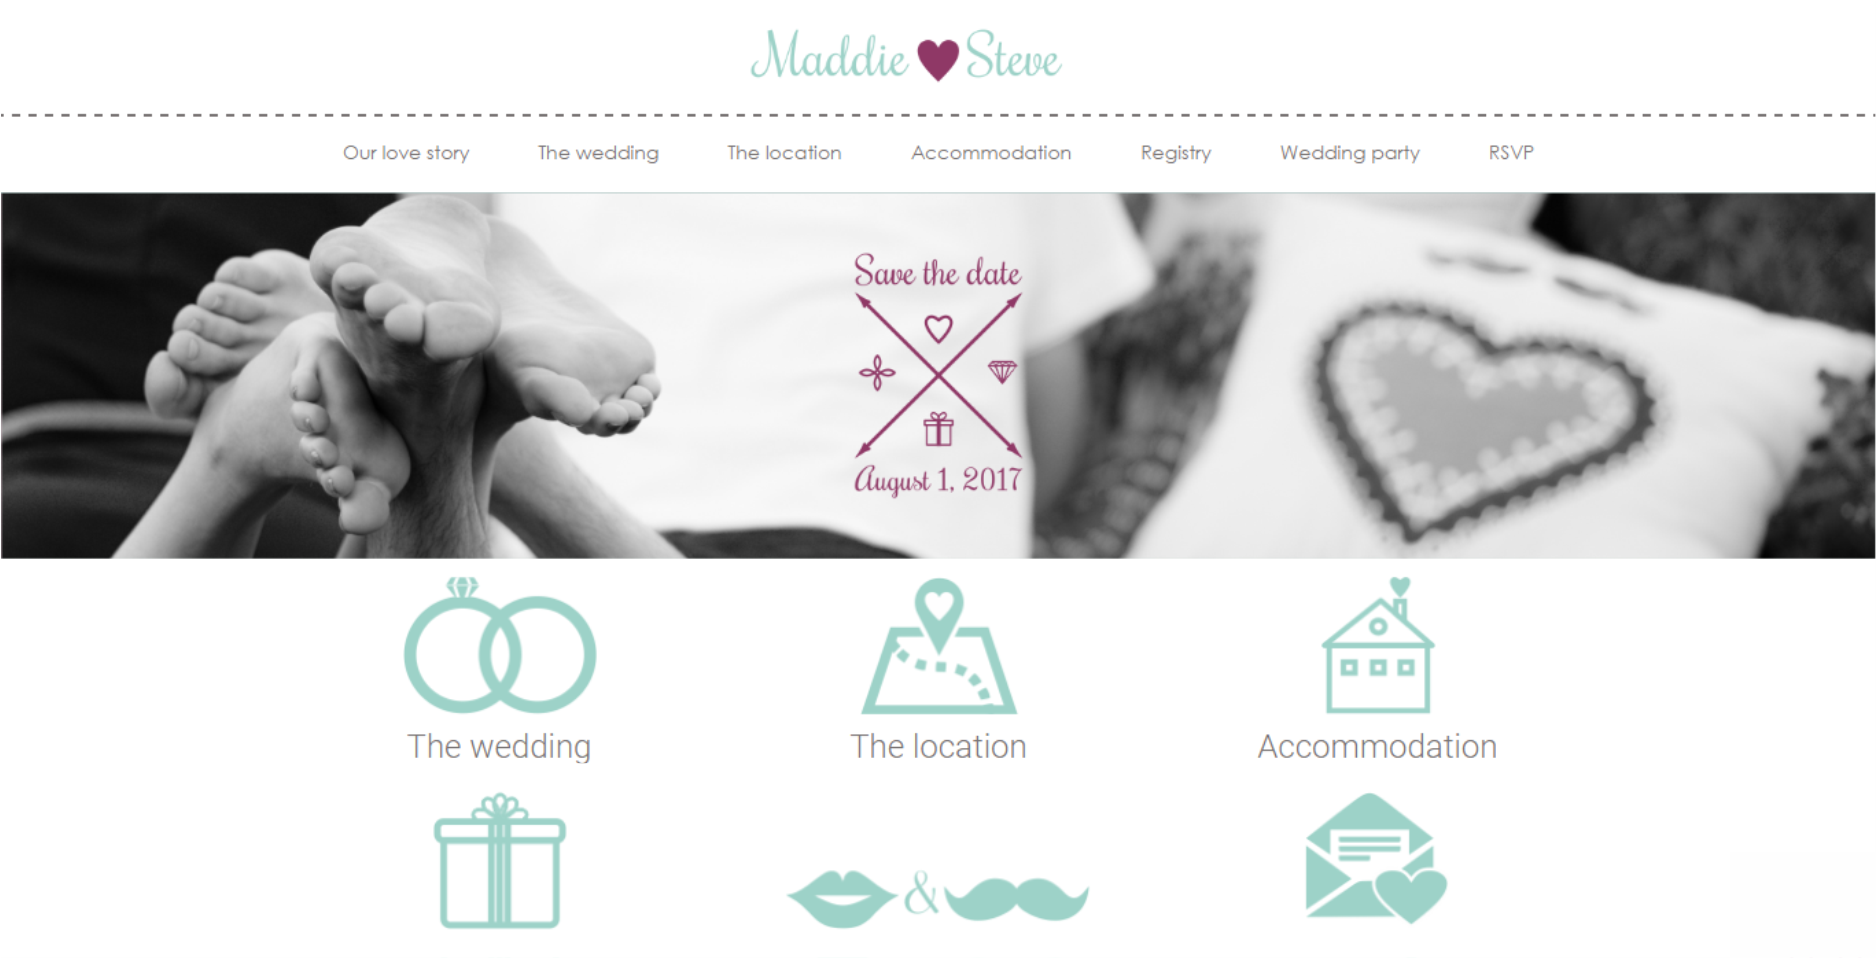 Mint anchor website template - Maddie and Steve